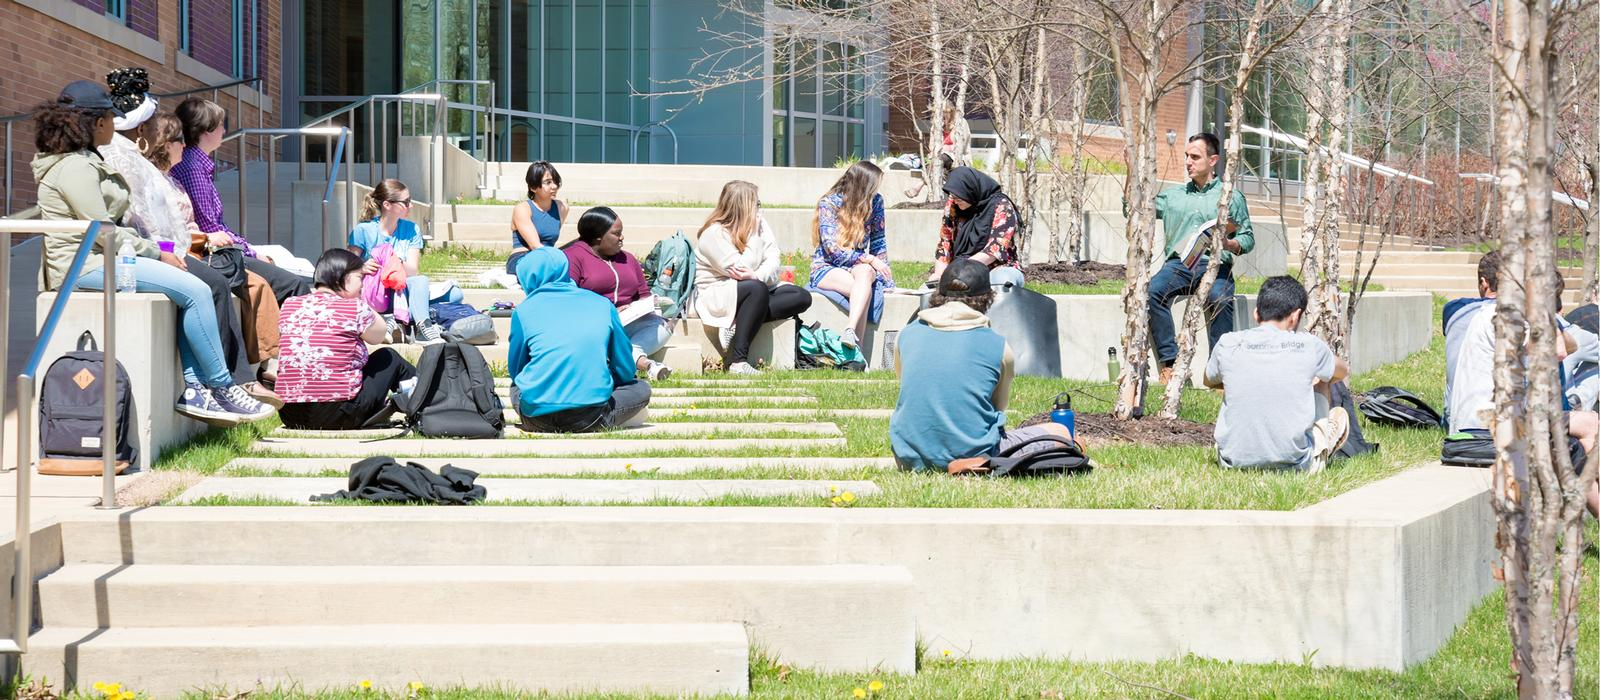 Students having class outside.